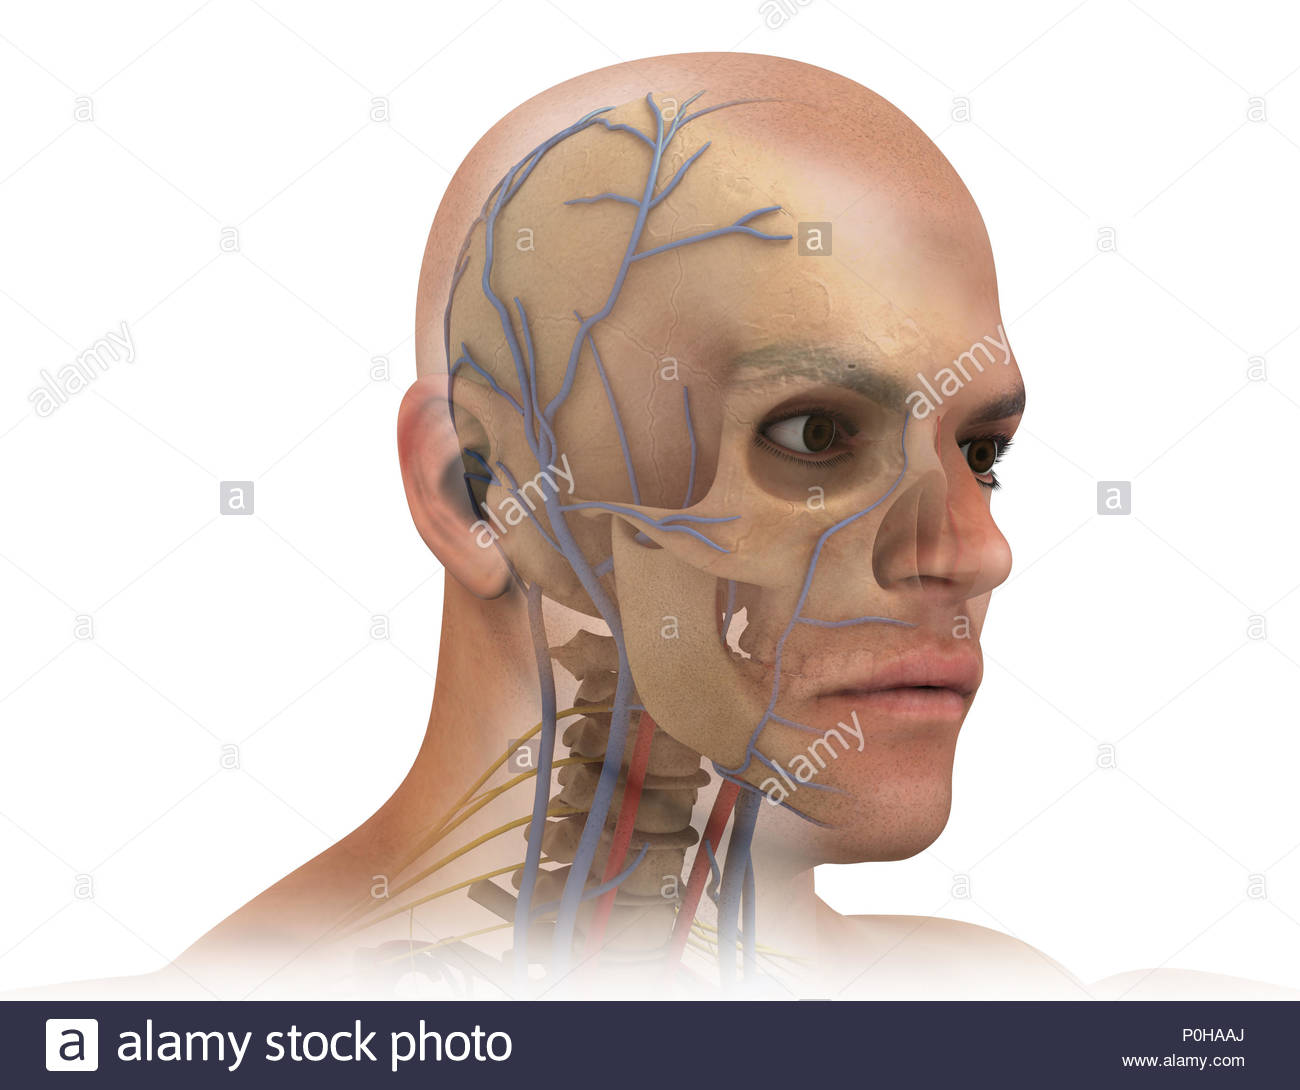 vintage red real heart diagram whirlpool bath wiring jugular vein stock photos & images - alamy